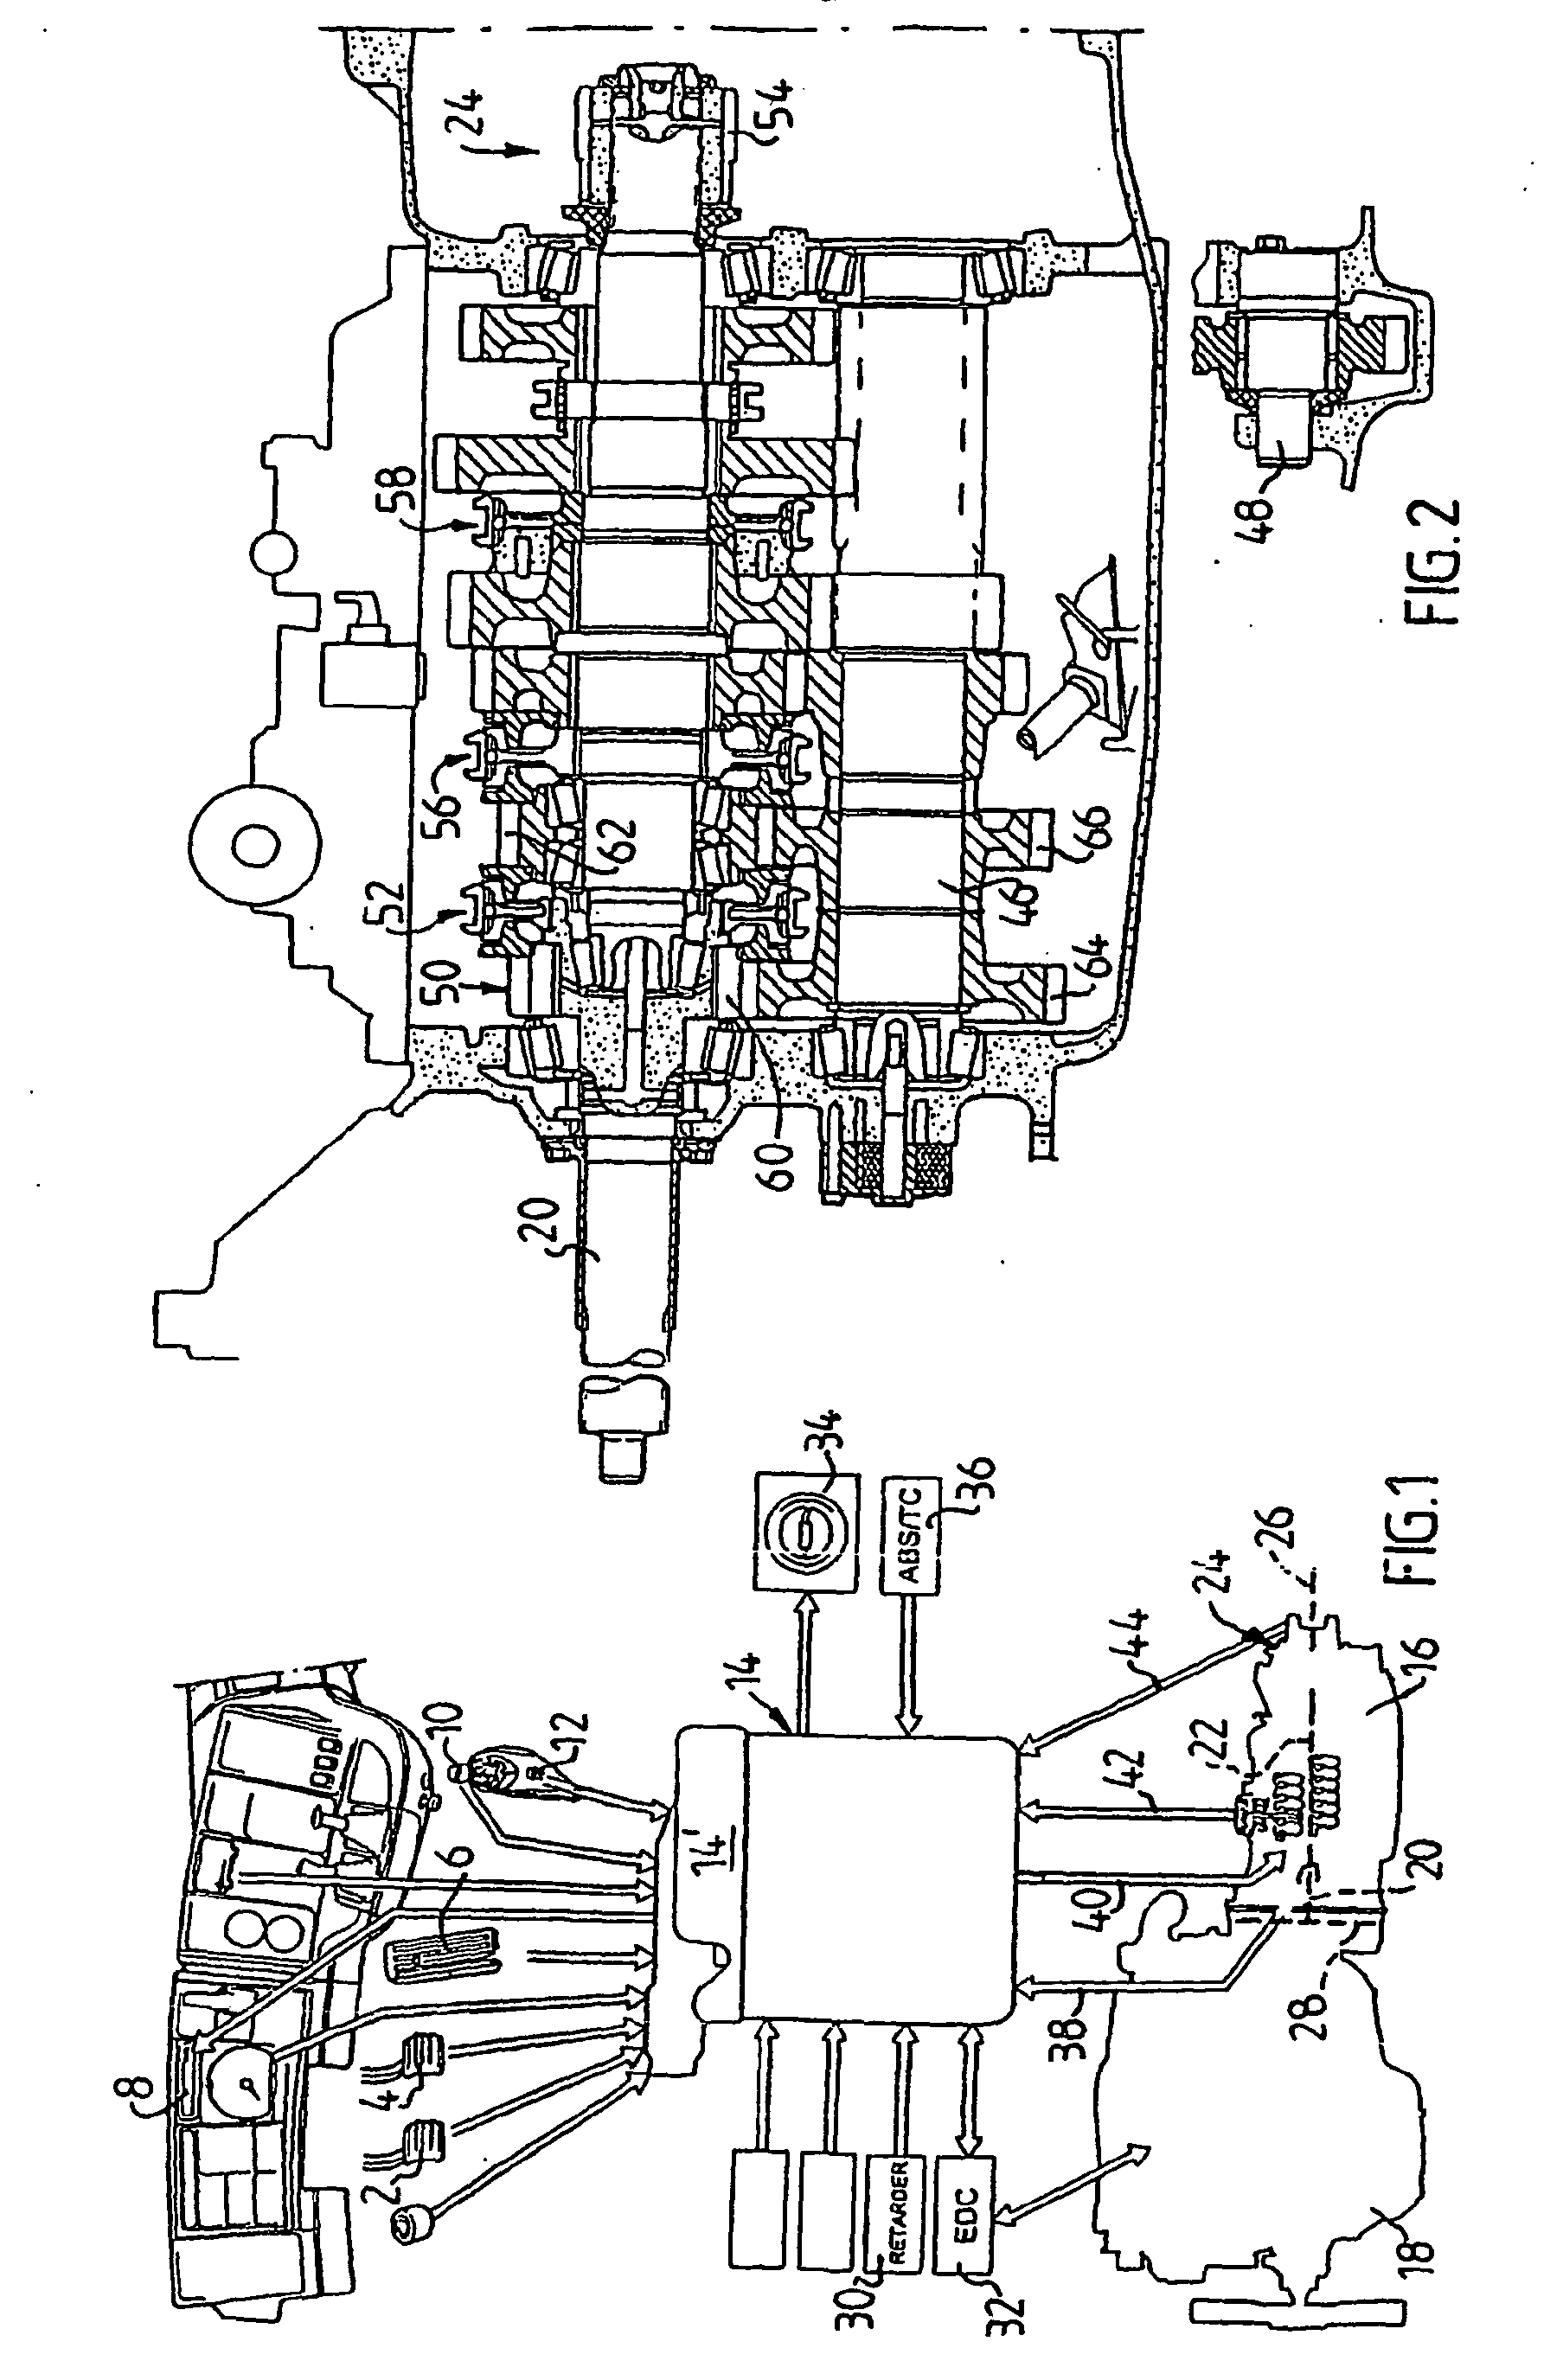 2001 sportster 1200 engine diagram